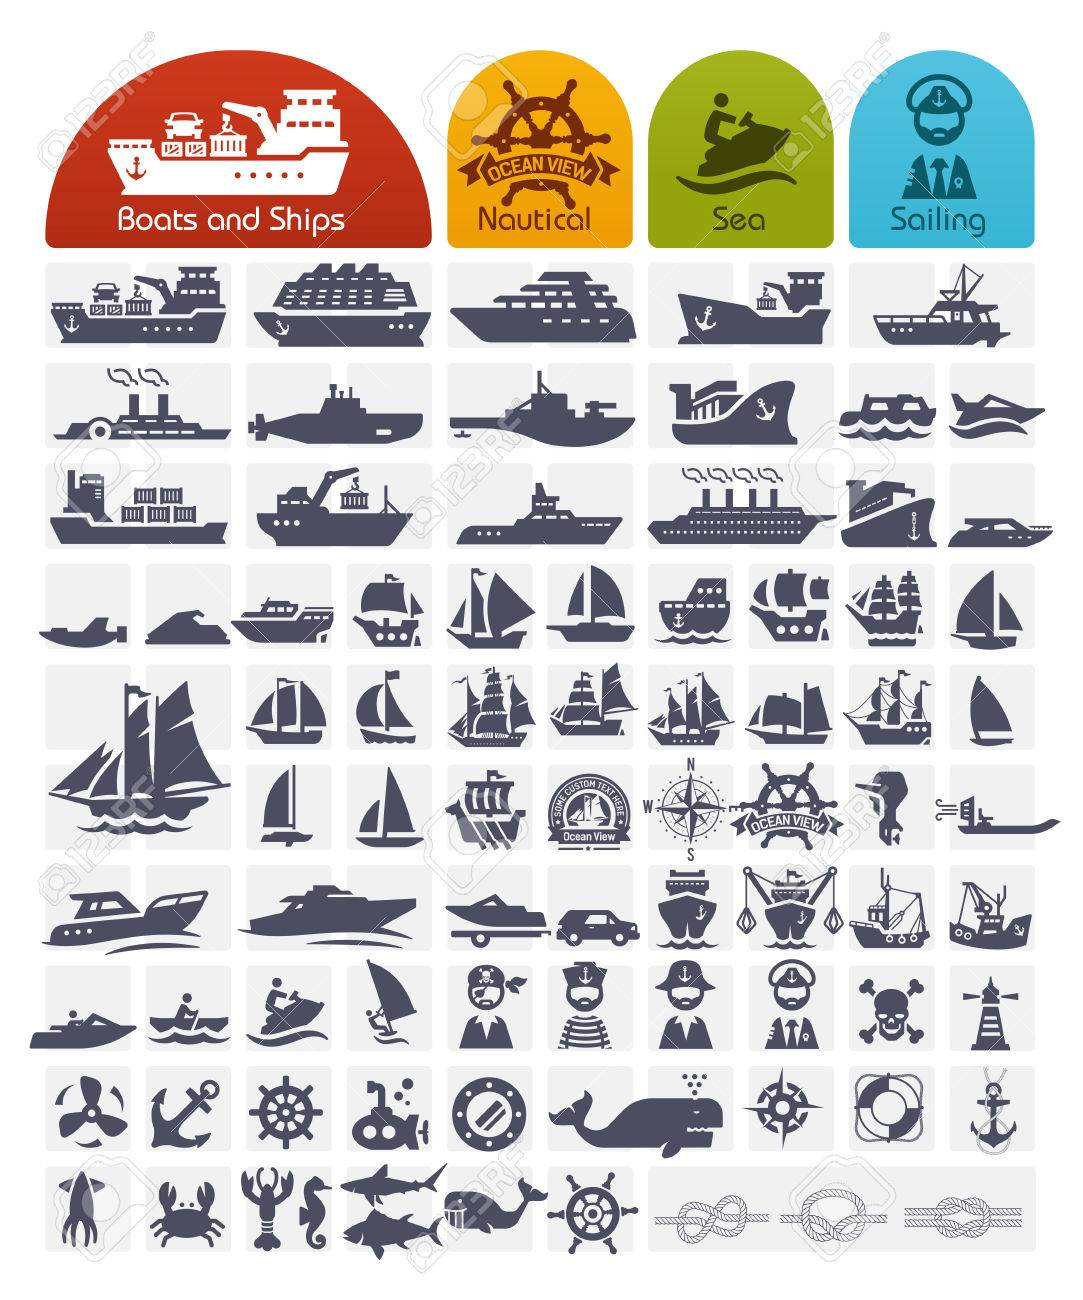 Ships and Boats Icons Bulk series - over 80 high quality icons - 27357717